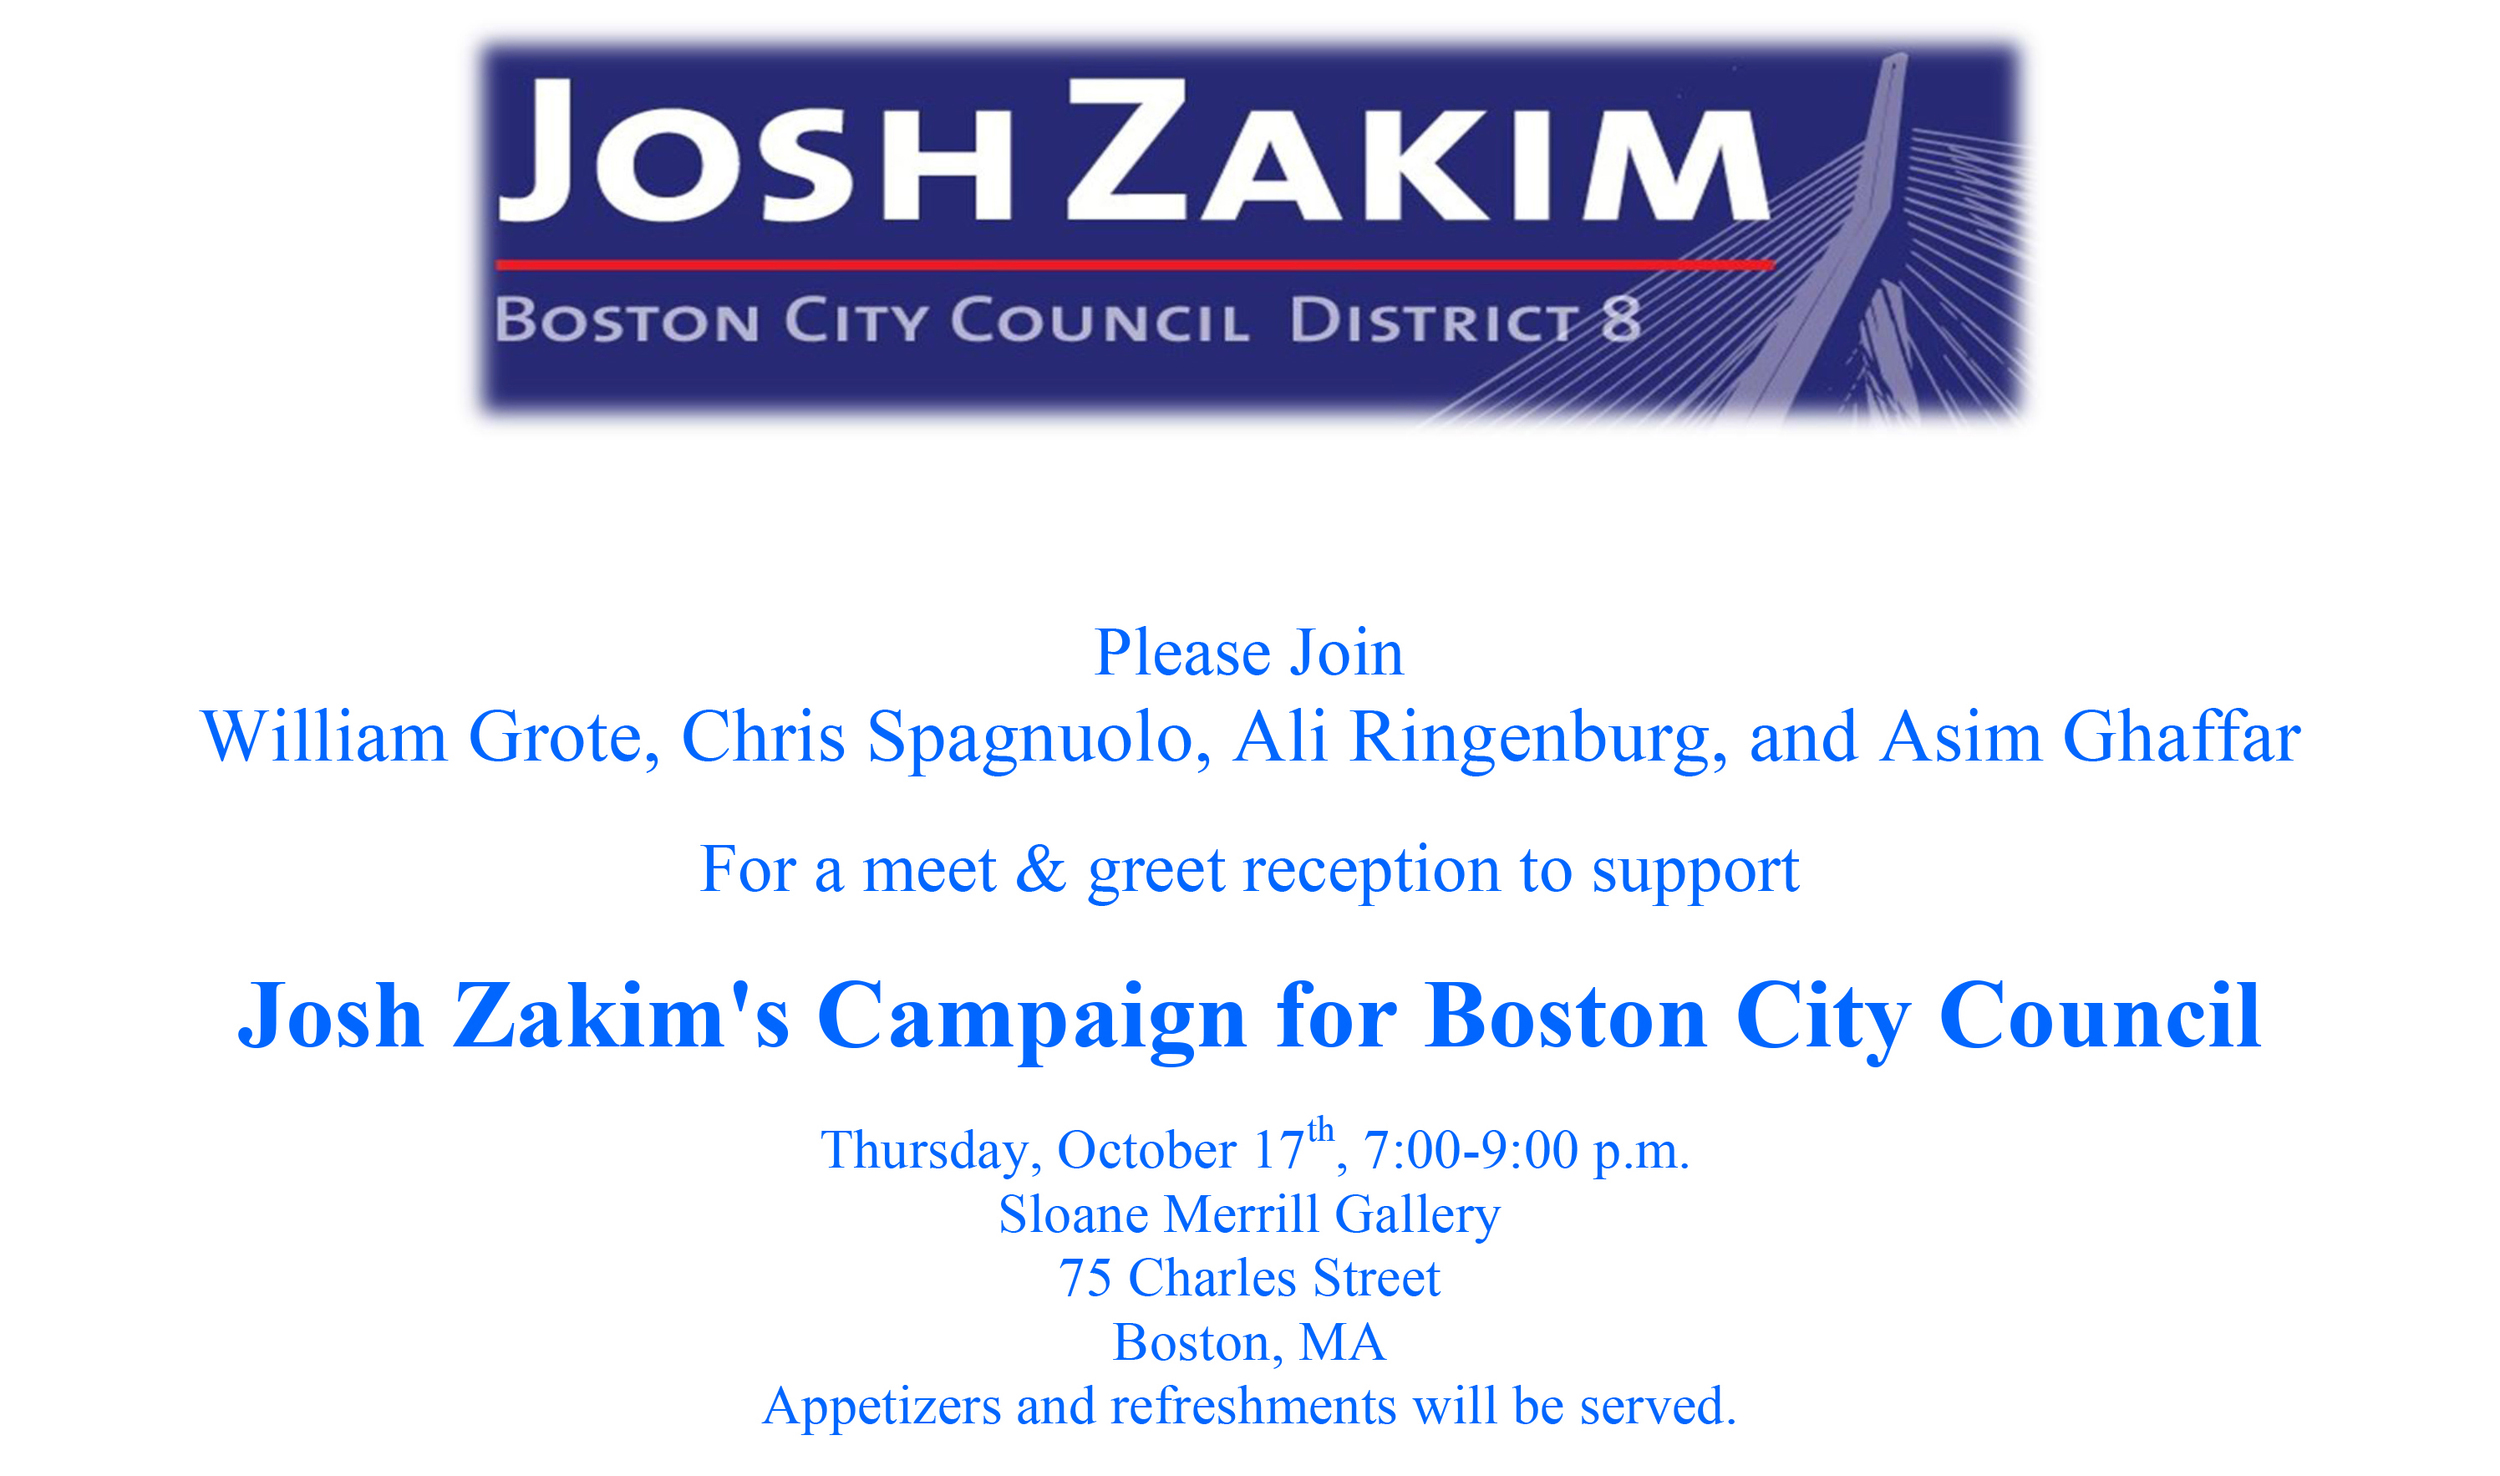 Zakim Event Invite 2.jpg